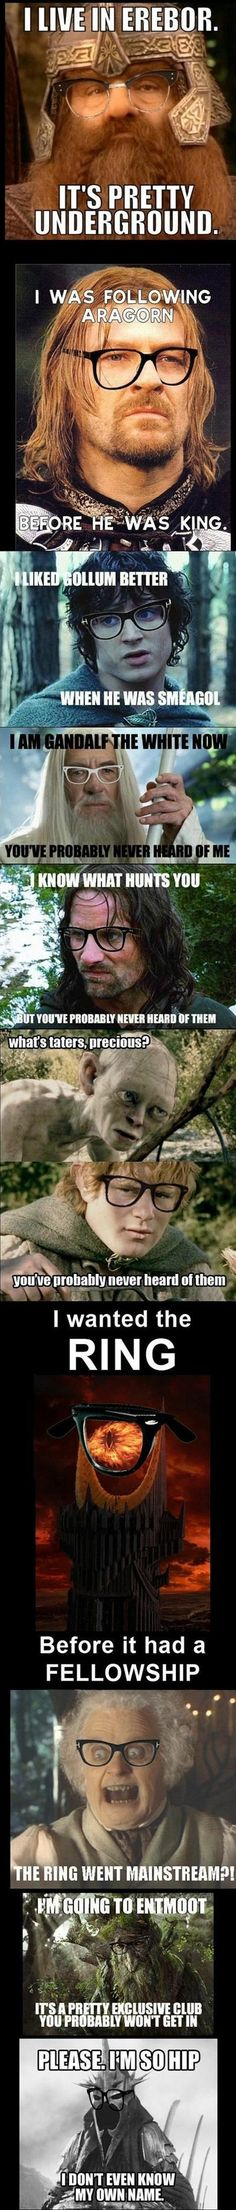 LOTR hipster edition - Imgur